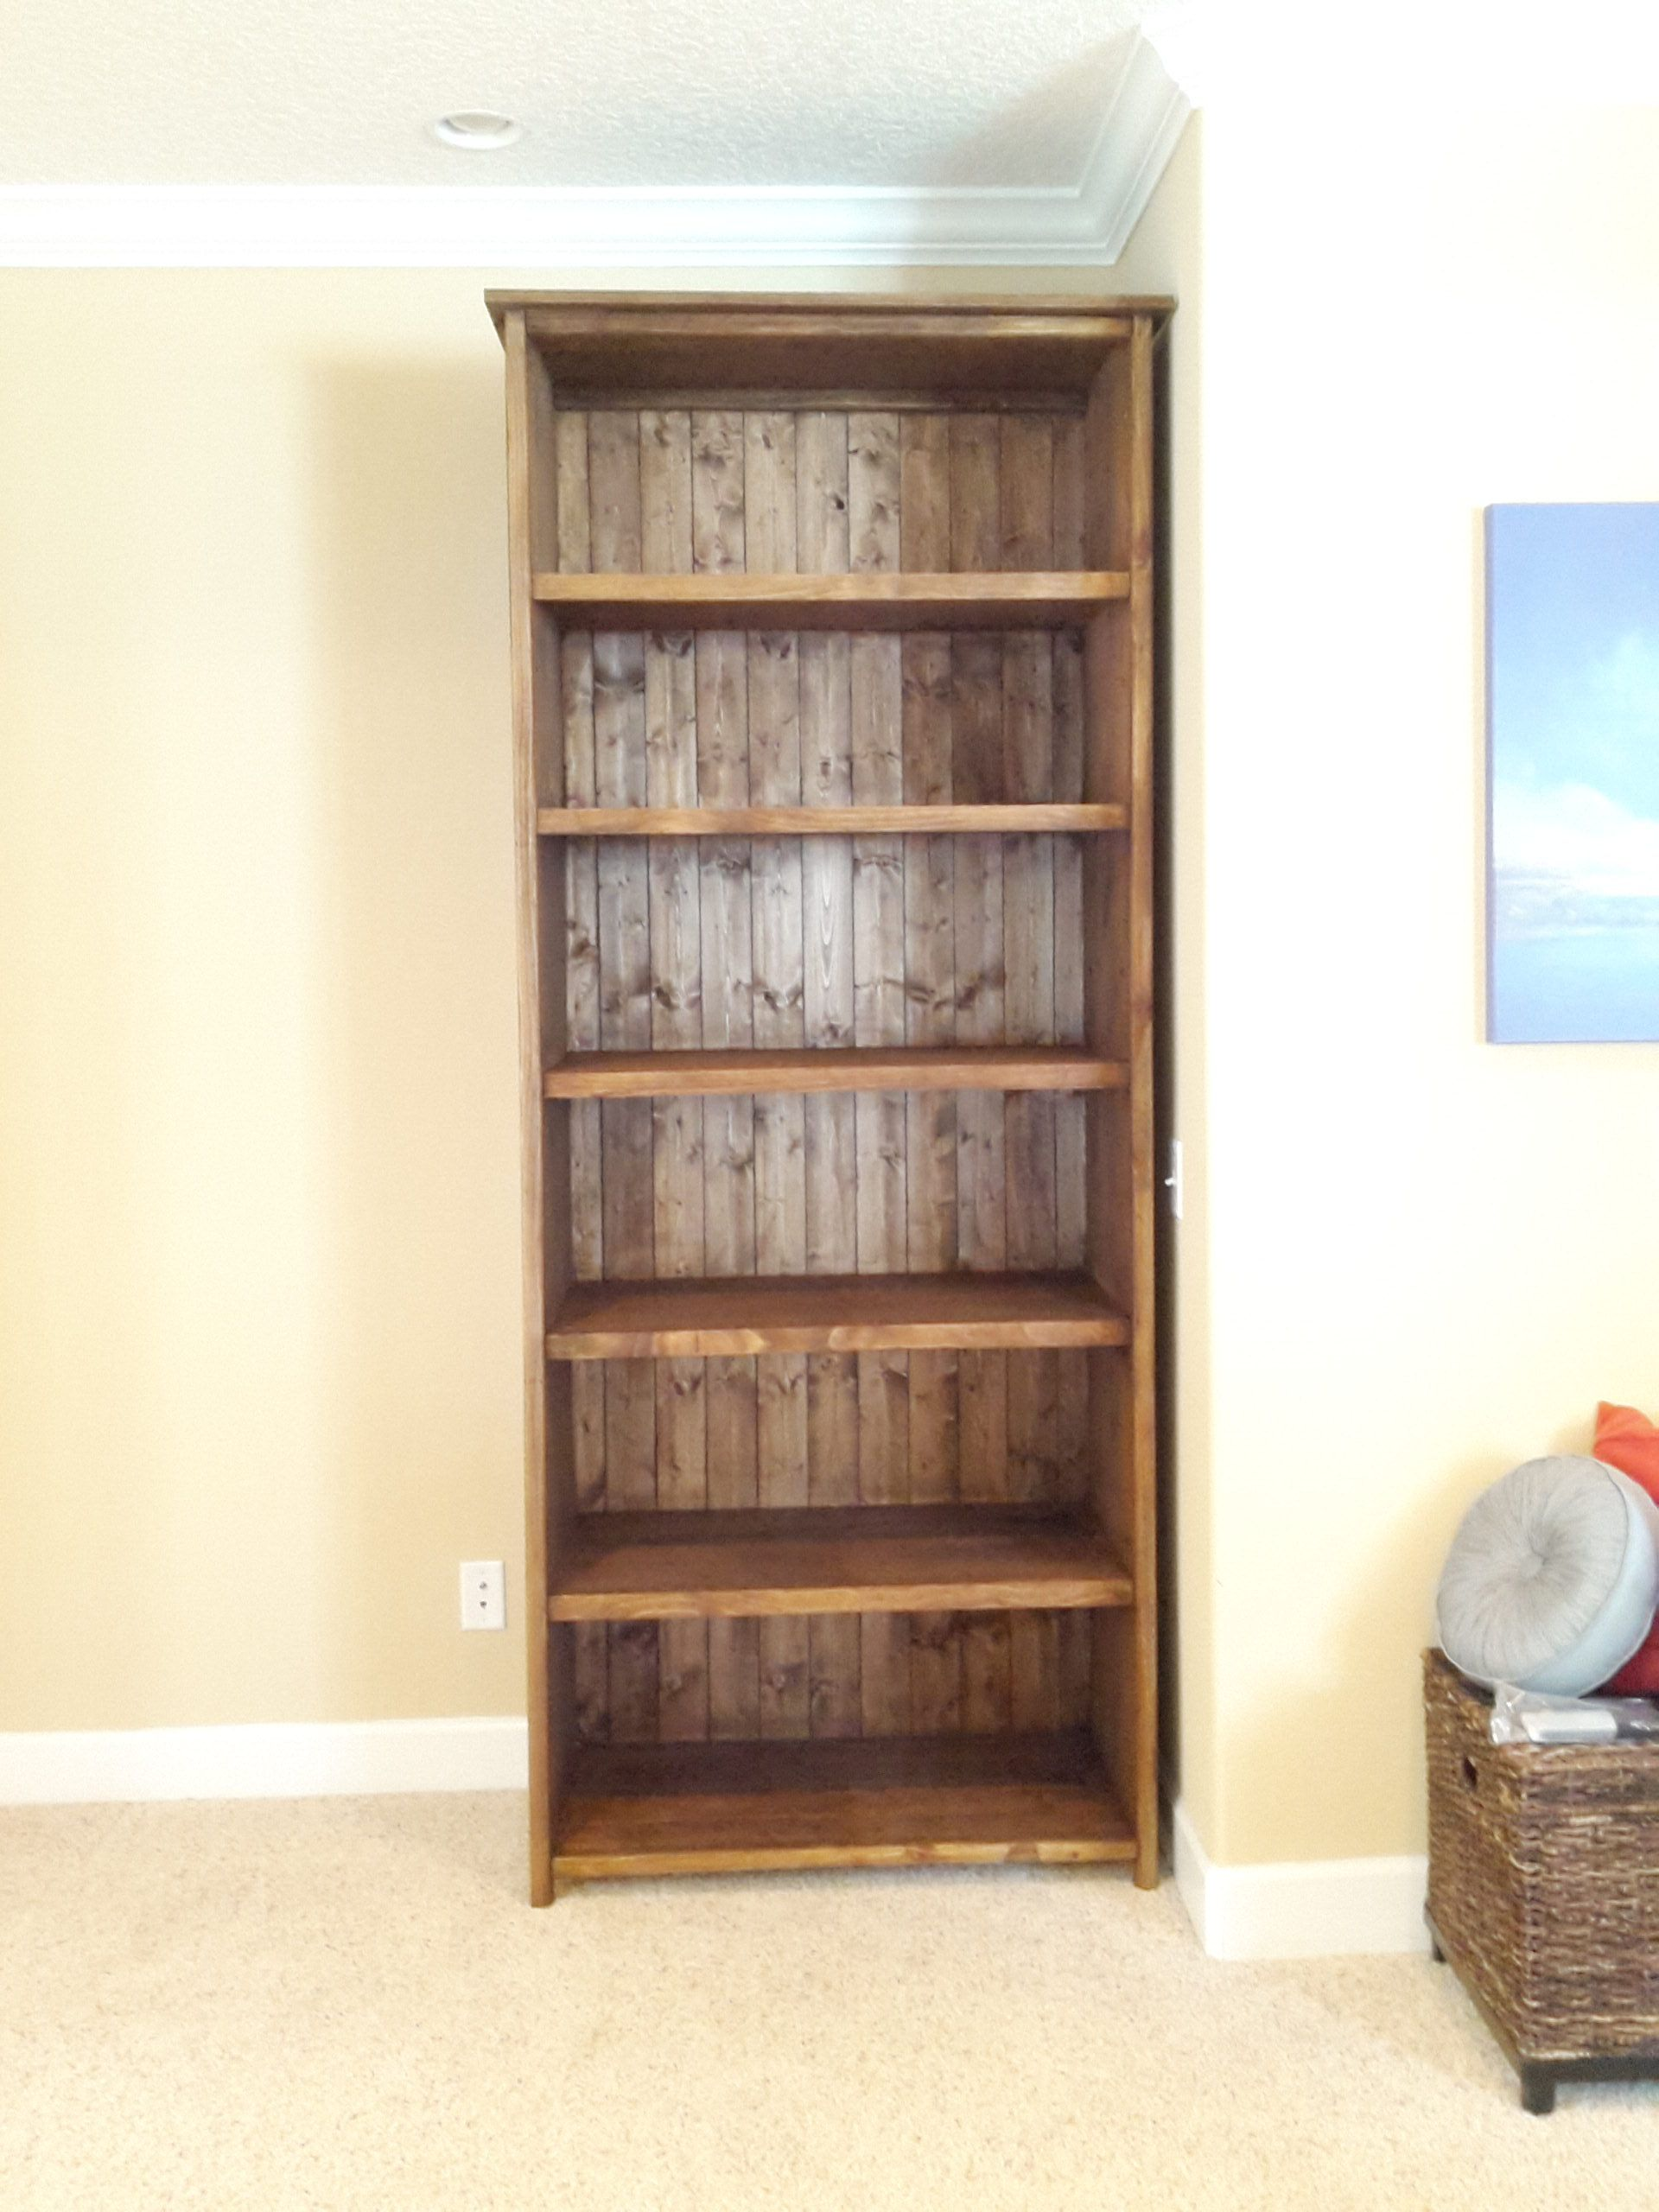 8 Foot Kentwood Bookshelf Do It Yourself Home Projects From Ana